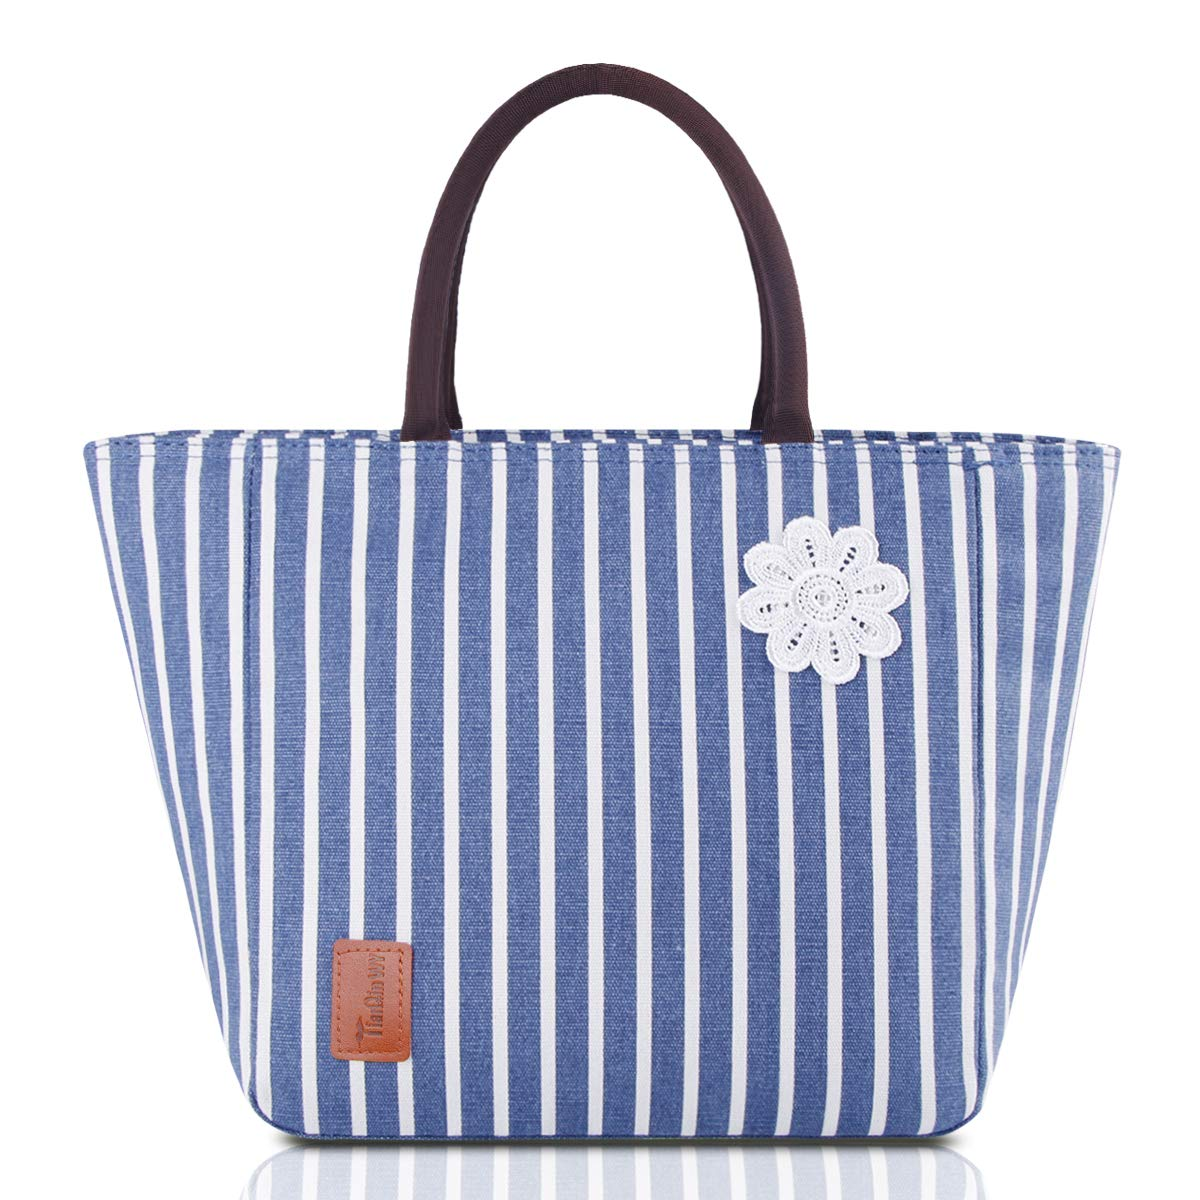 5af32bf7af78 TianQin WY Lunch Tote Bag for Women Best Lunch Bags t